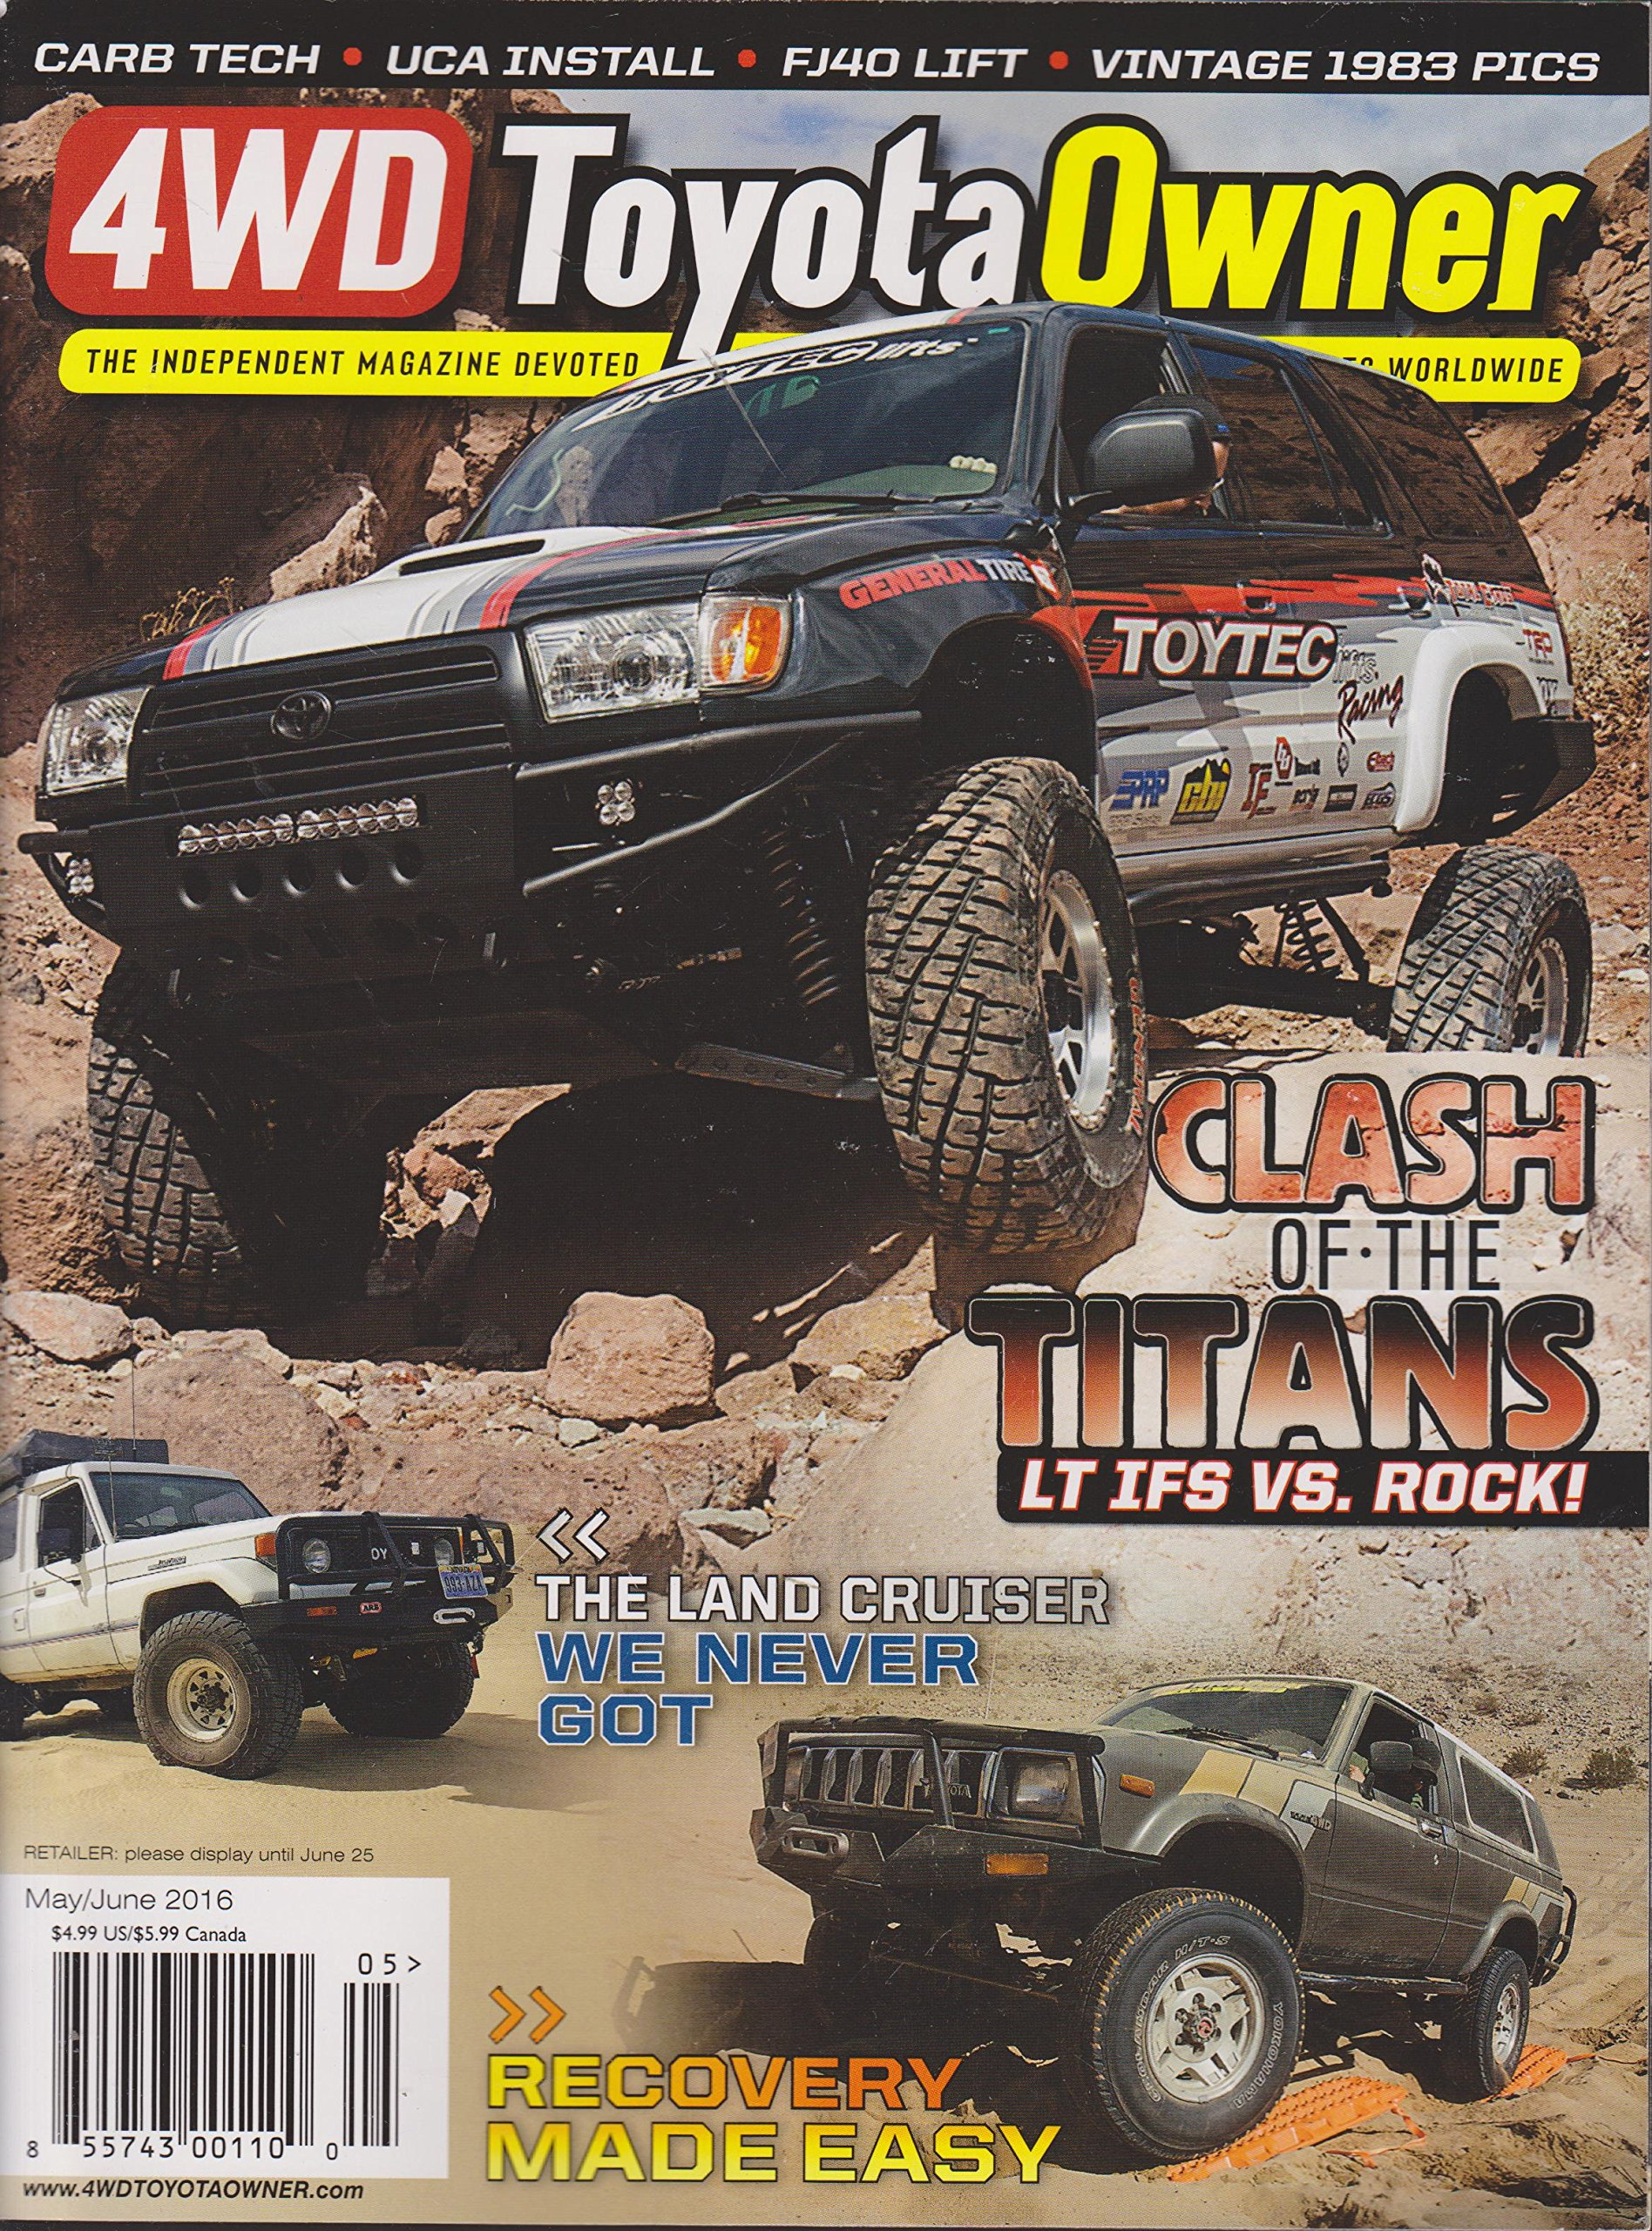 Read Online 4WD Toyota Owner Magazine May/June 2016 ebook